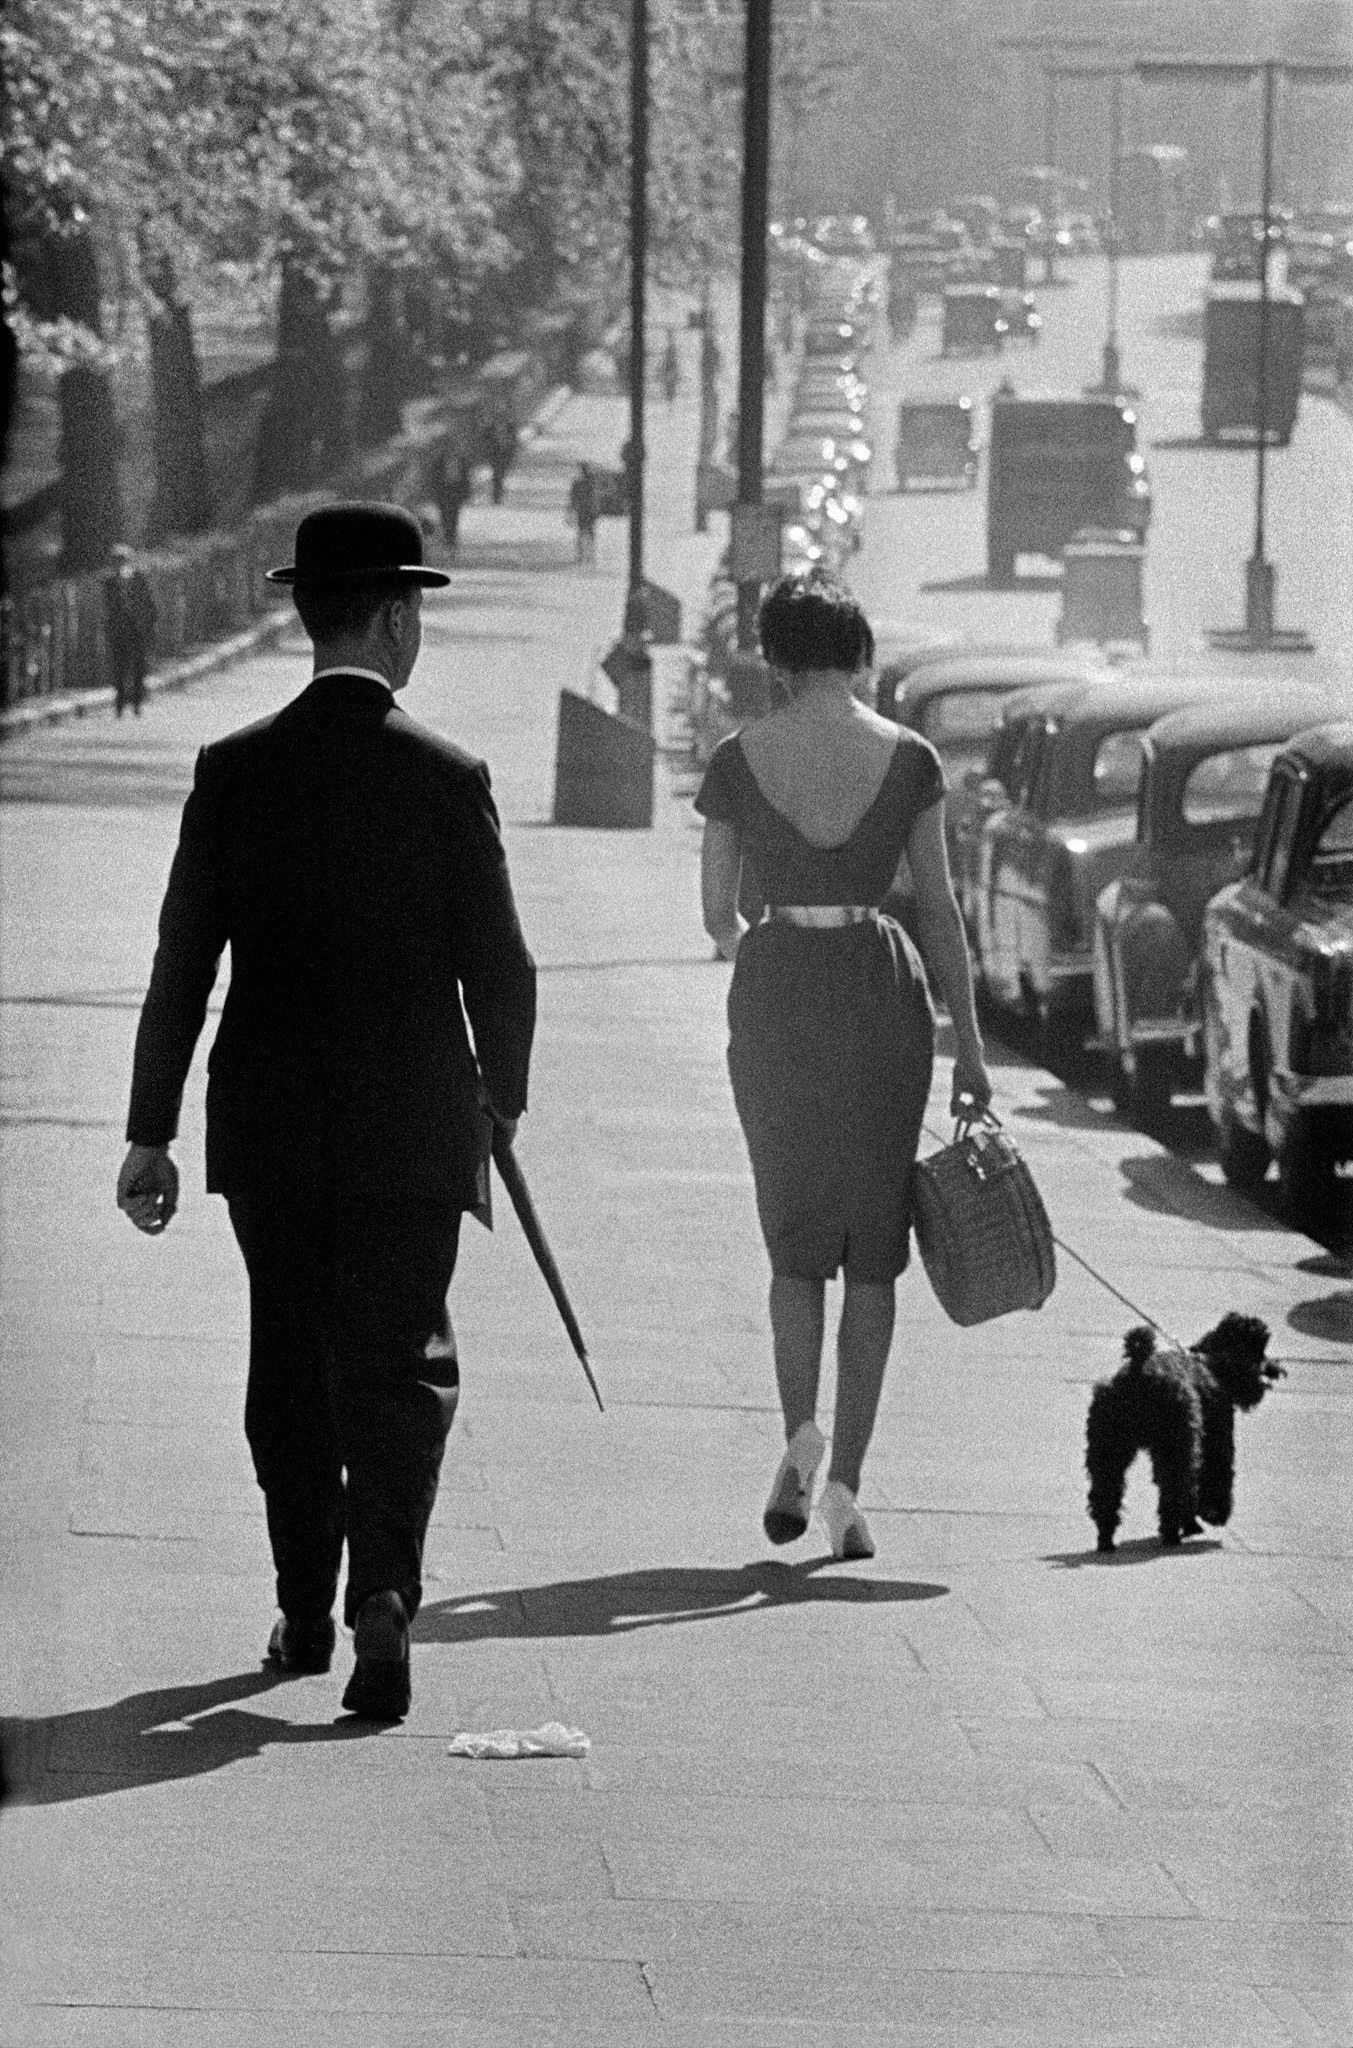 London Piccadilly, 1959